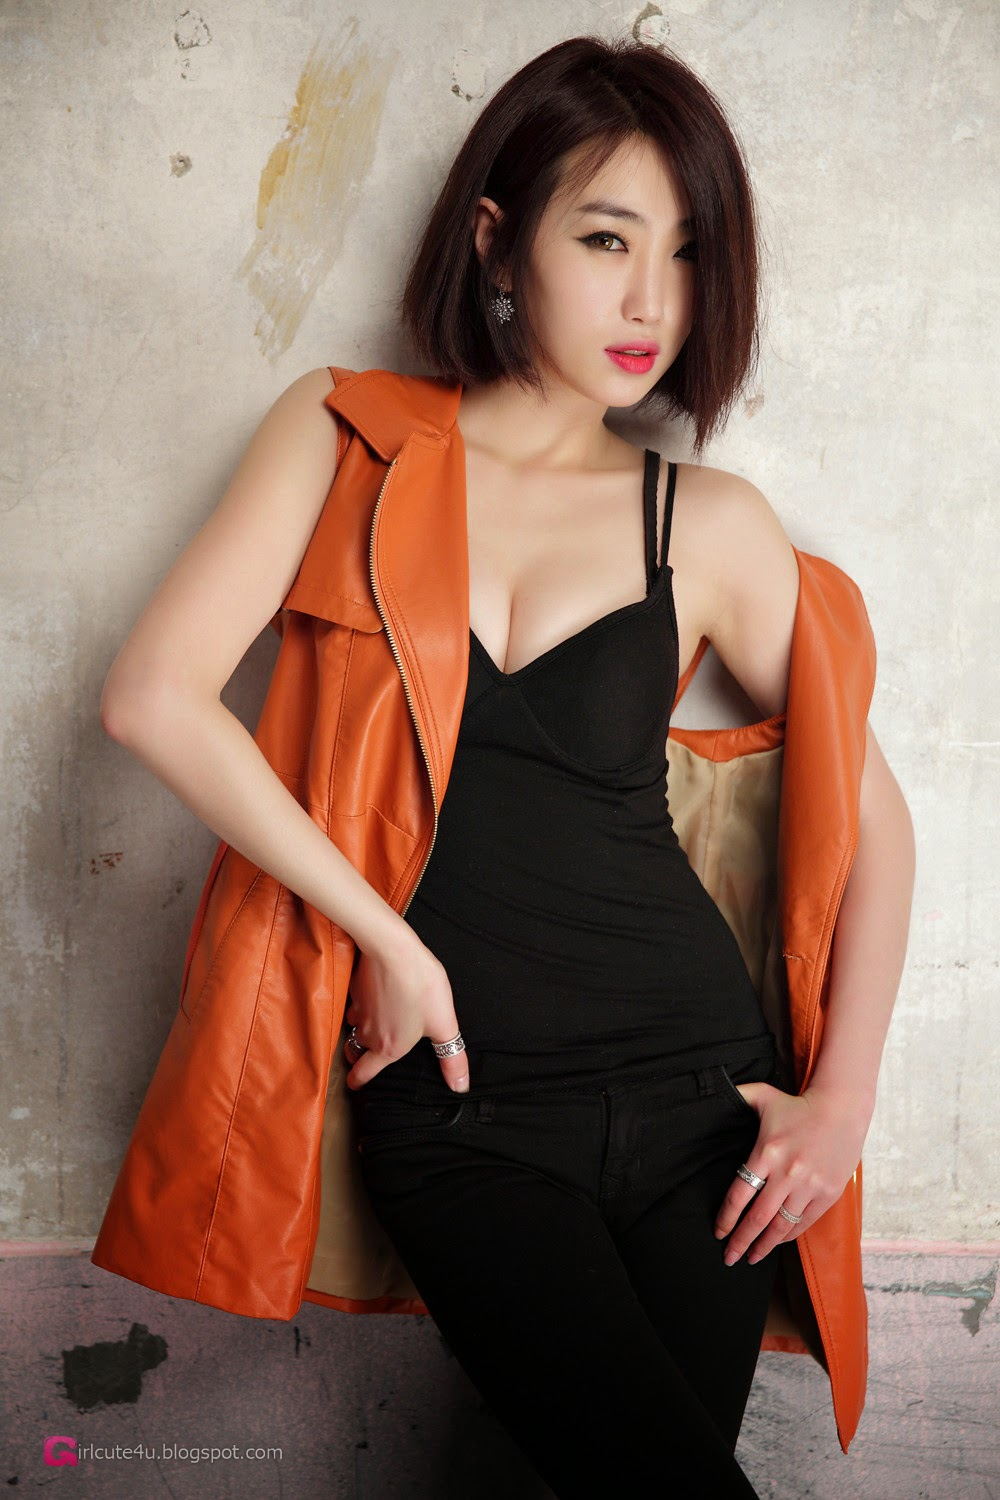 5 Kim Mi Hye - very cute asian girl-girlcute4u.blogspot.com